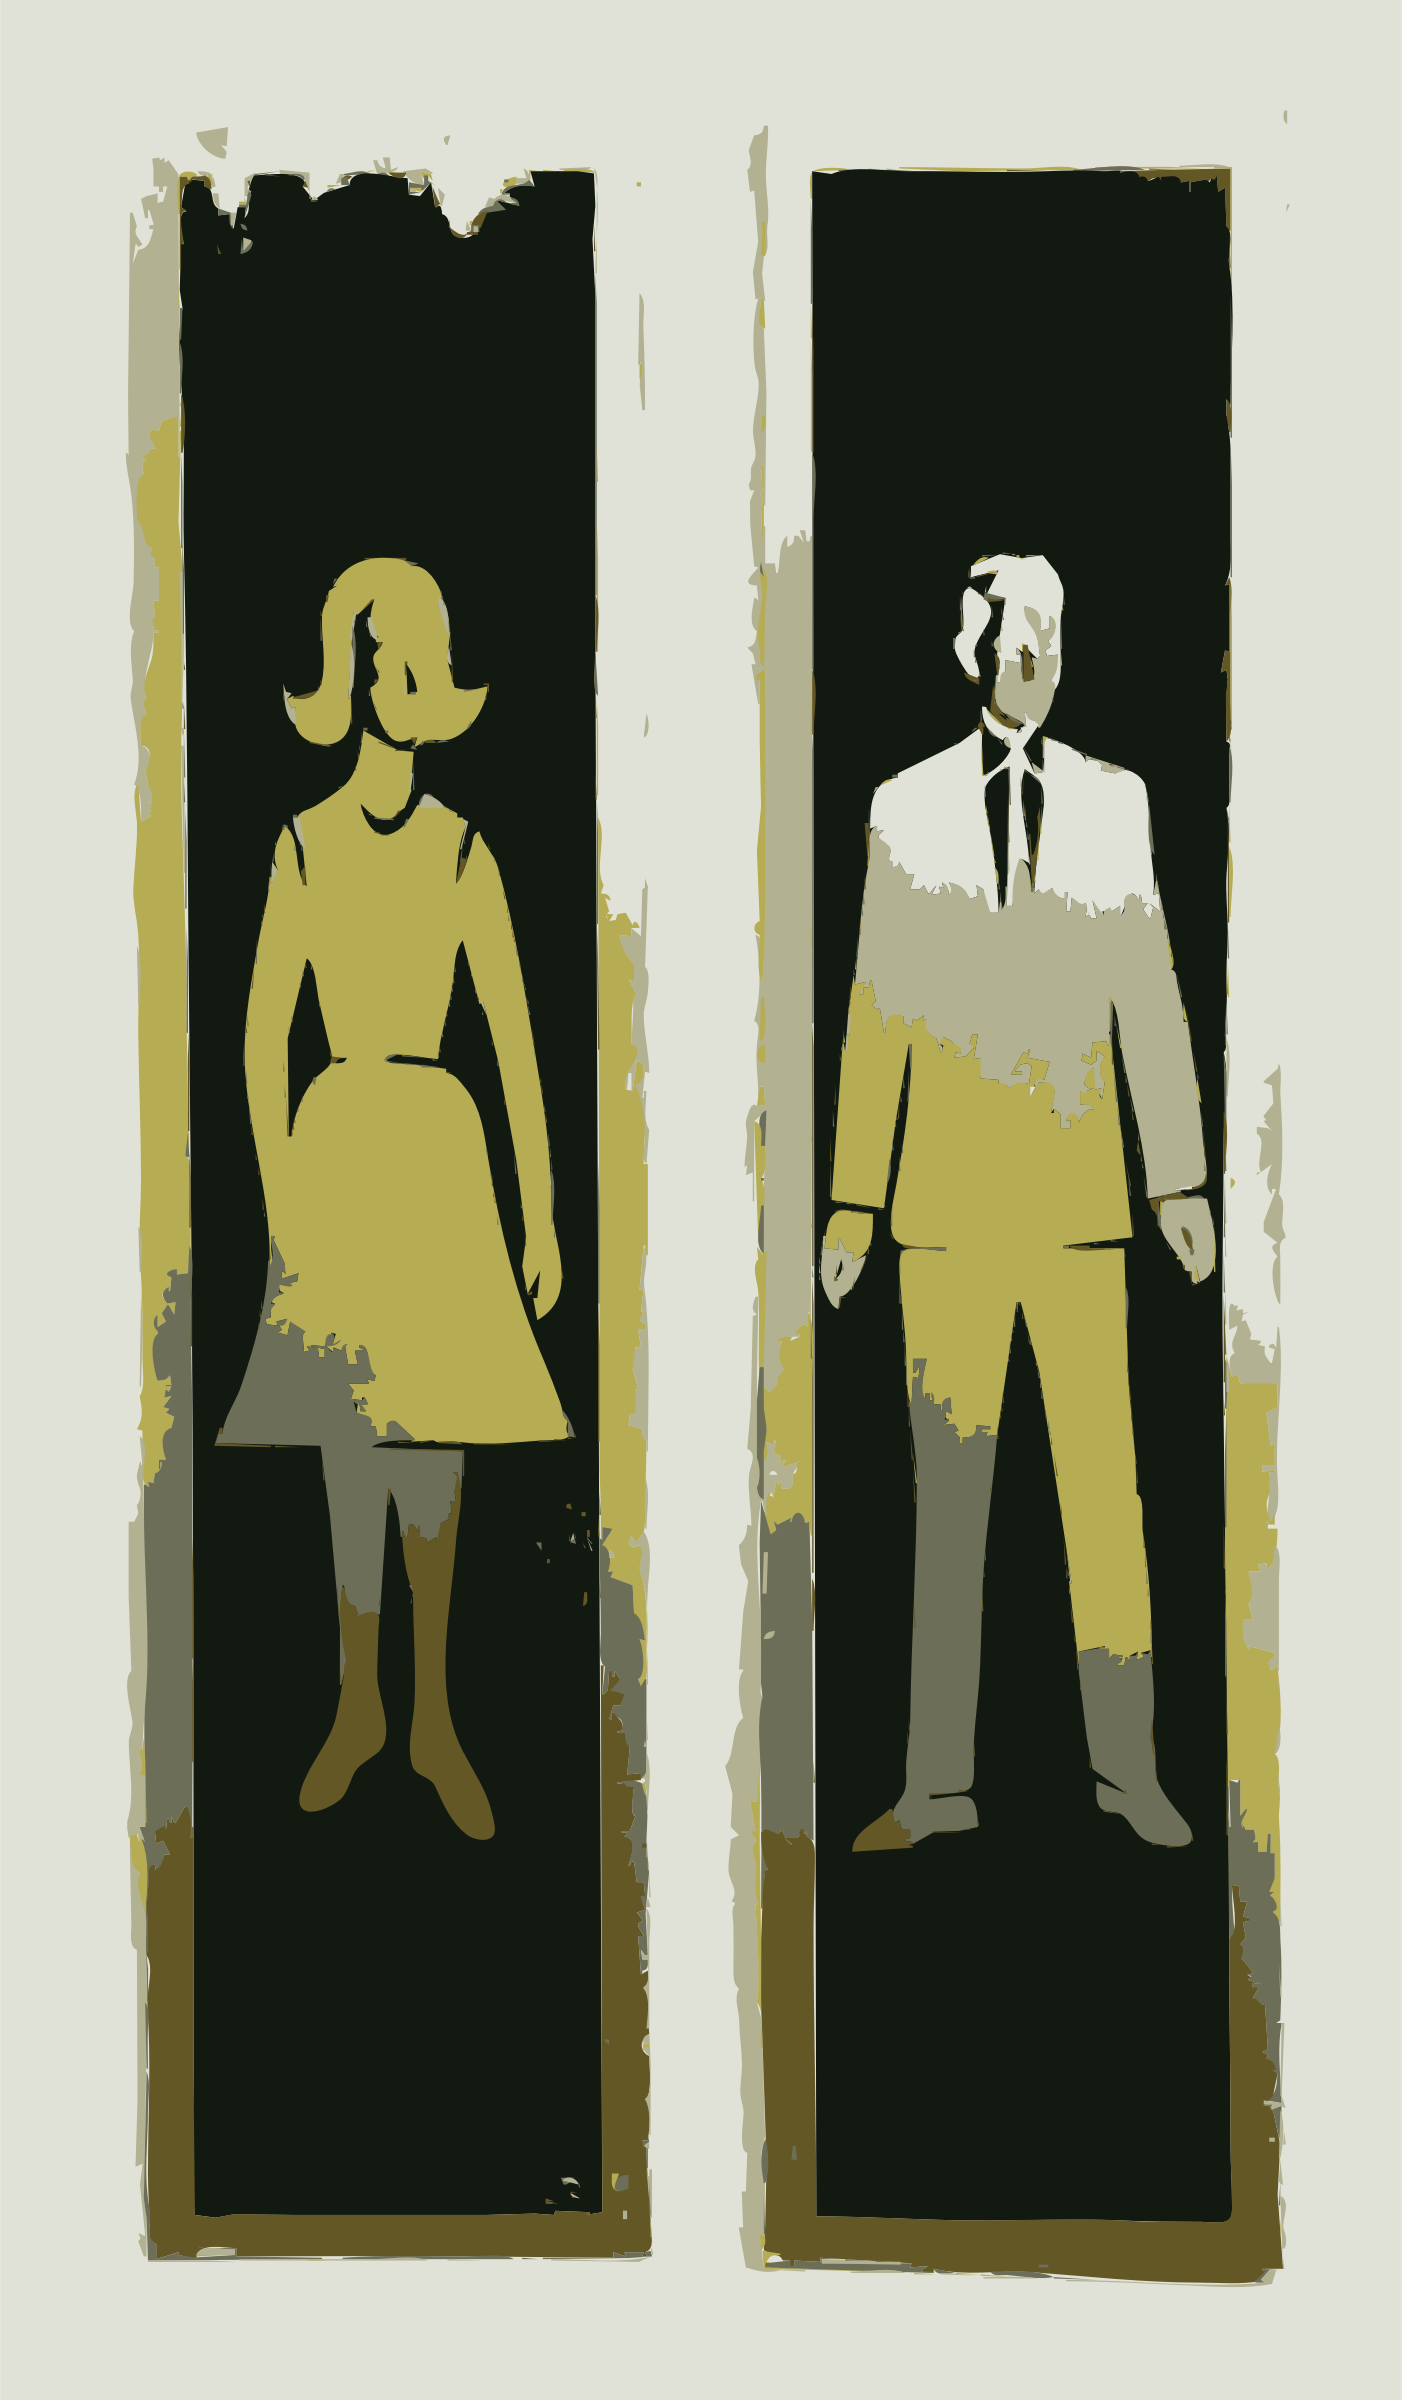 Bathroom Sign Man And Woman clipart - man and woman bathroom sign